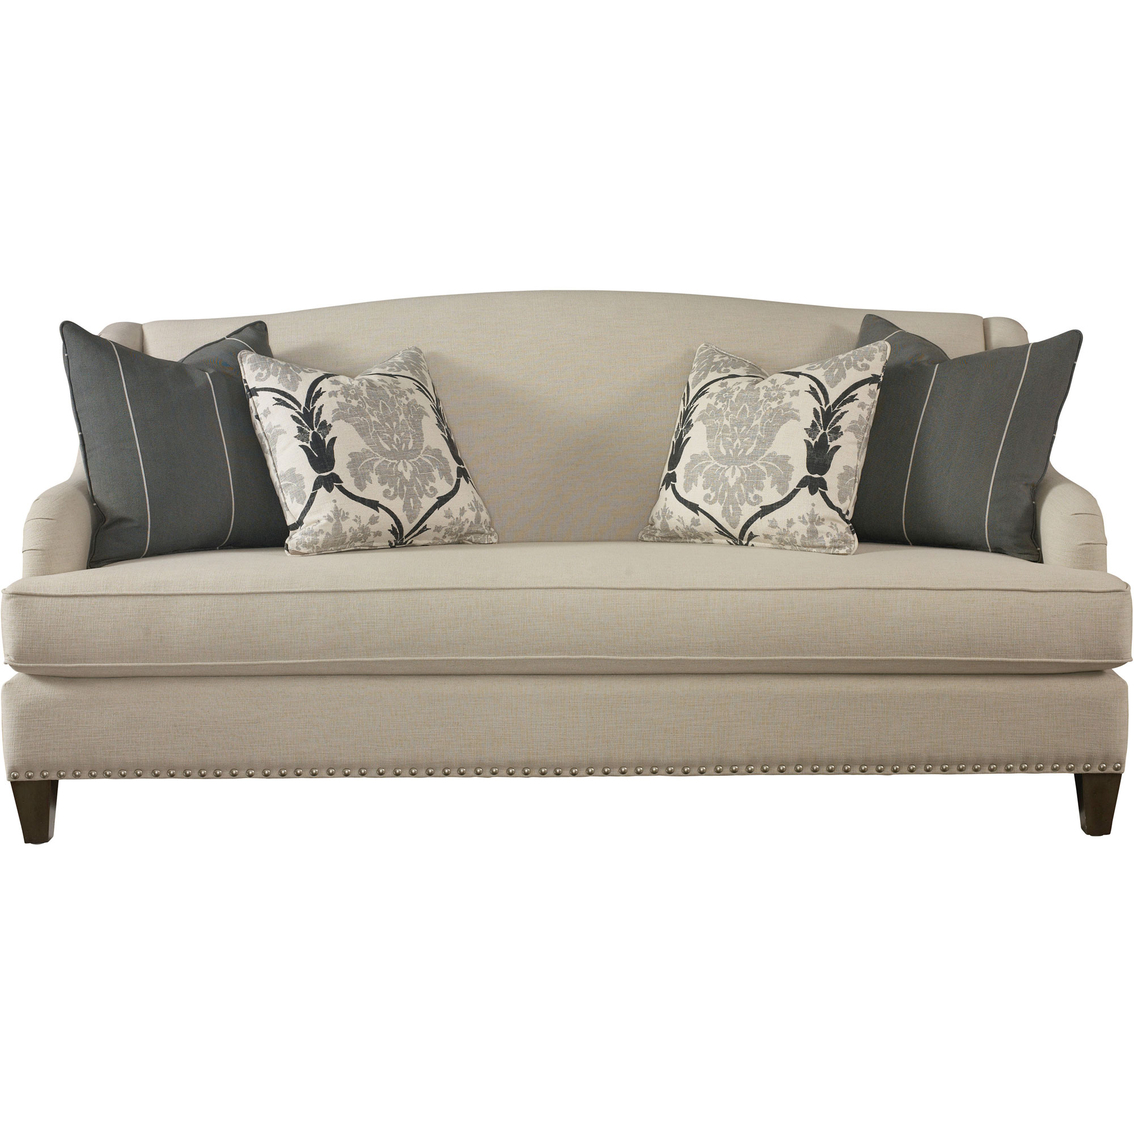 Bassett couches and sofas hereo sofa for Furniture couches sofas